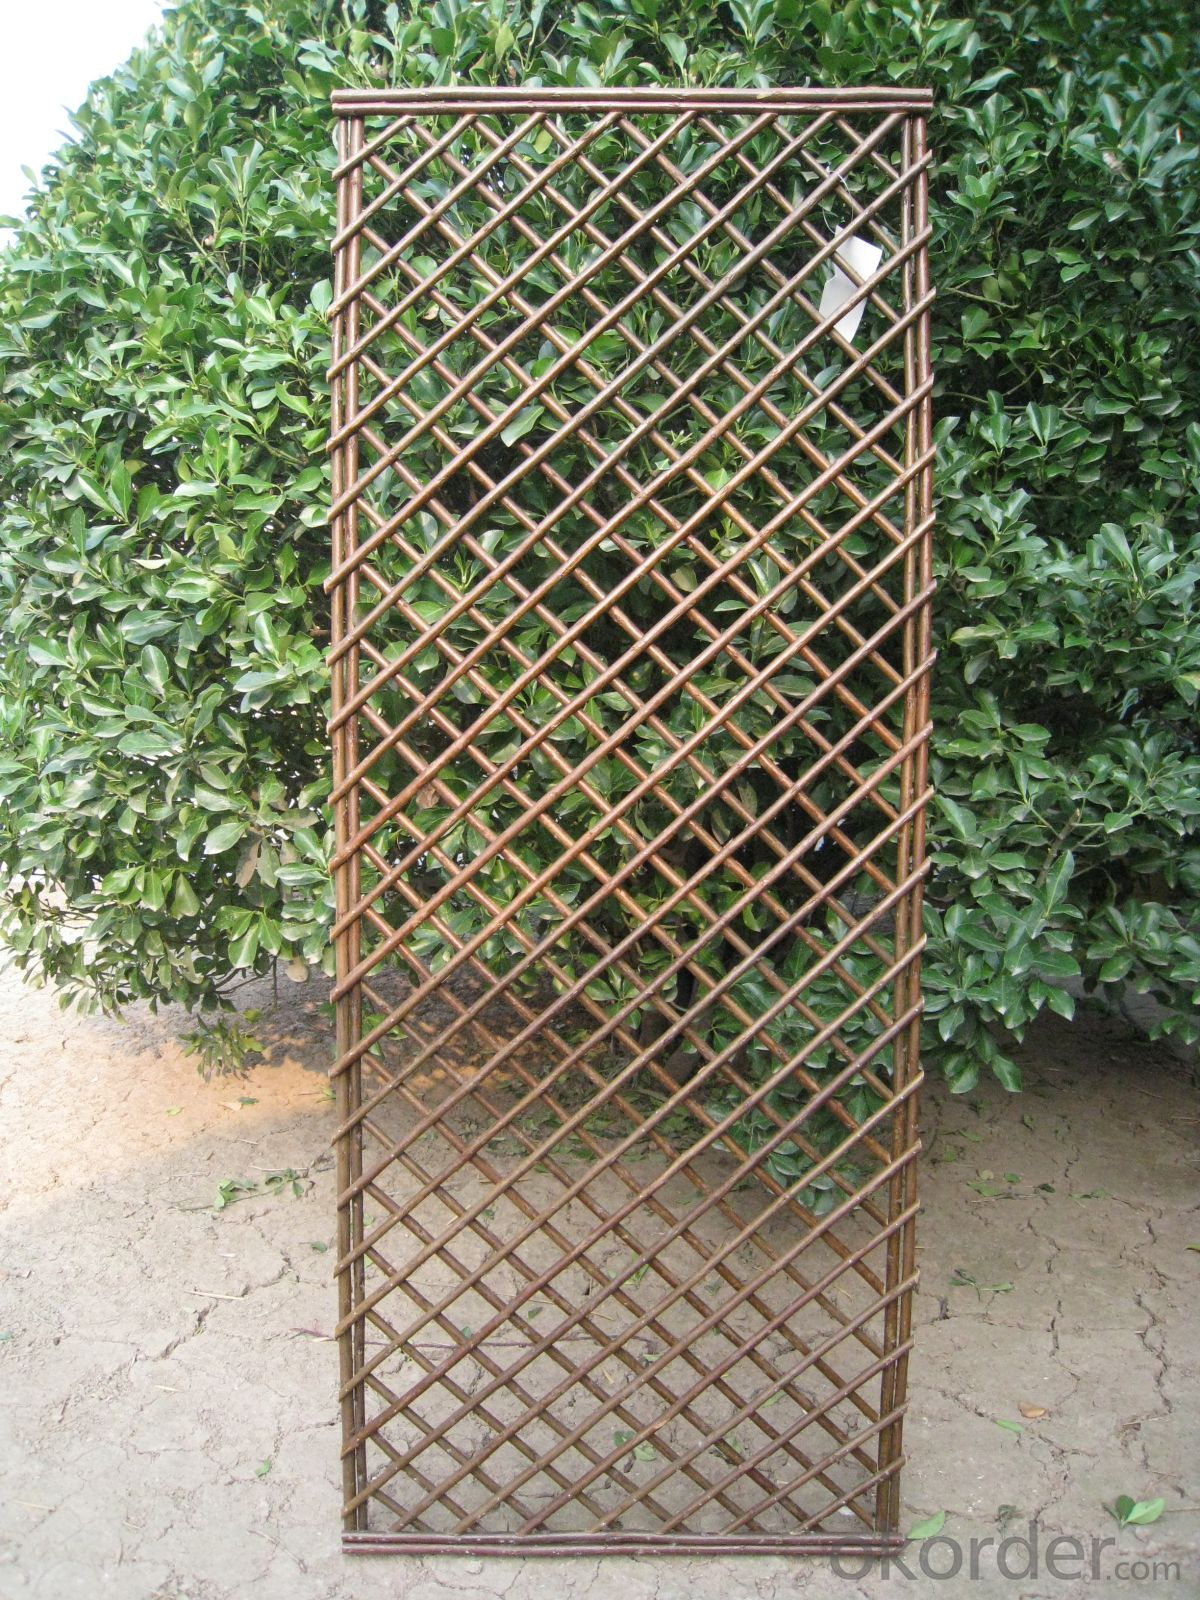 Buy Willow Trellis Natural Fencing Screening Price Size